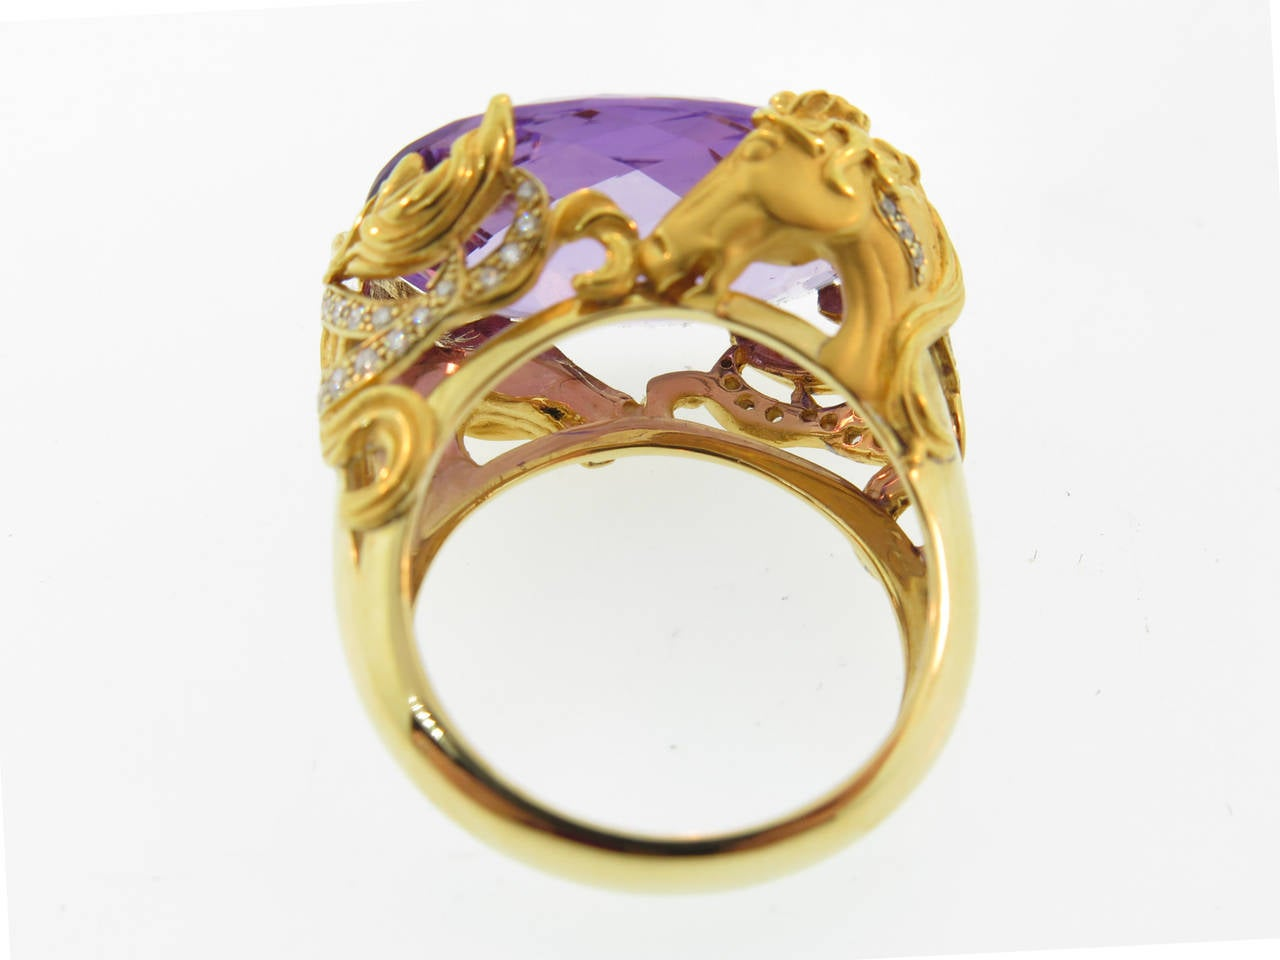 Ring in yellow gold, amethyst and diamonds. Horses have played an important role in classical art since pre-history. Manuel Carrera, master gold smith distills the power, beauty, and elegance of these magnificent animals into a golden tribute to the